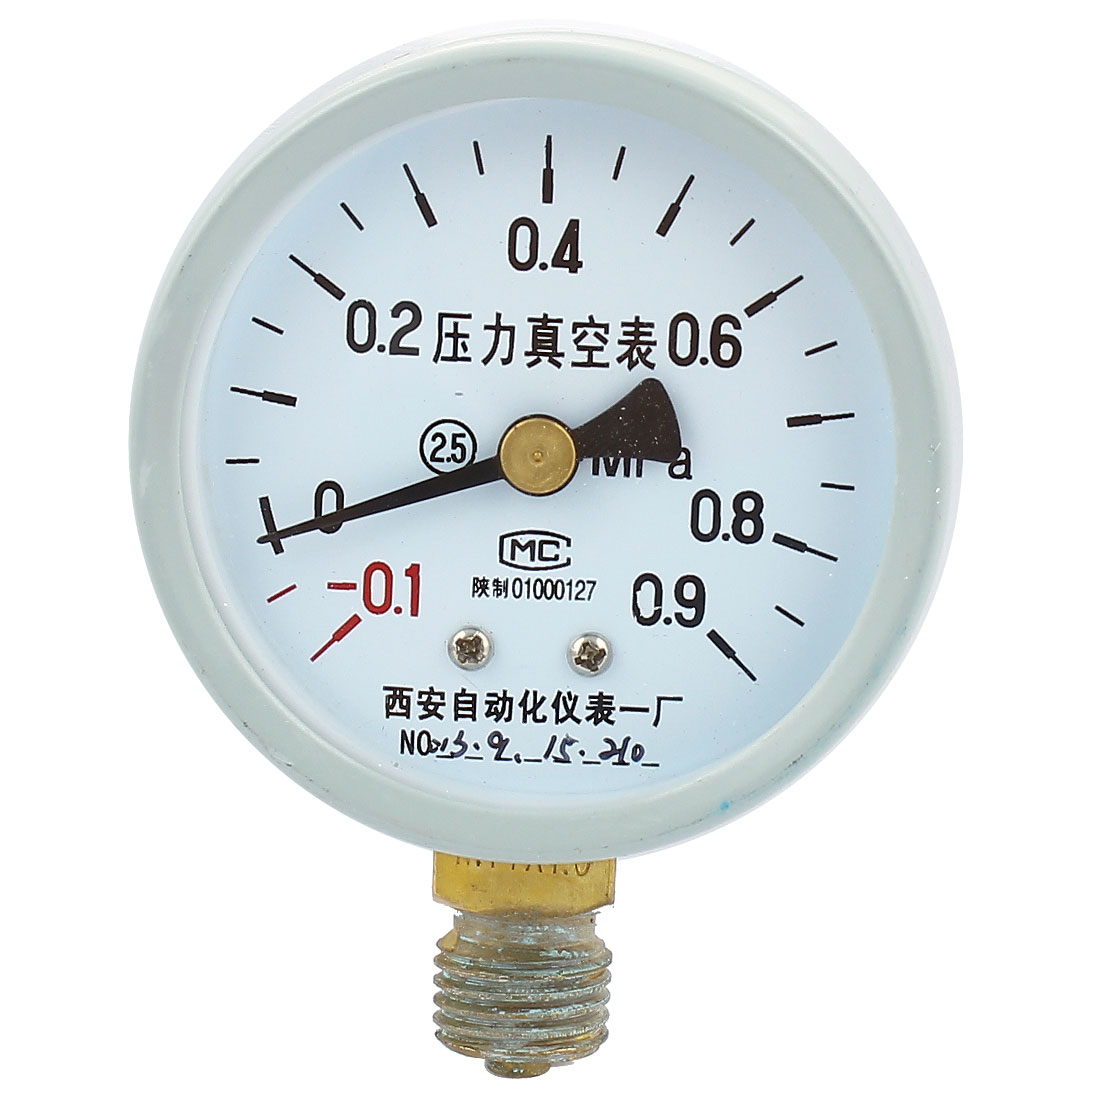 Round Dial Air Pneumatic Vacuum Pressure Meter Gauge -0.1MPa to 0.9MPa 60mm